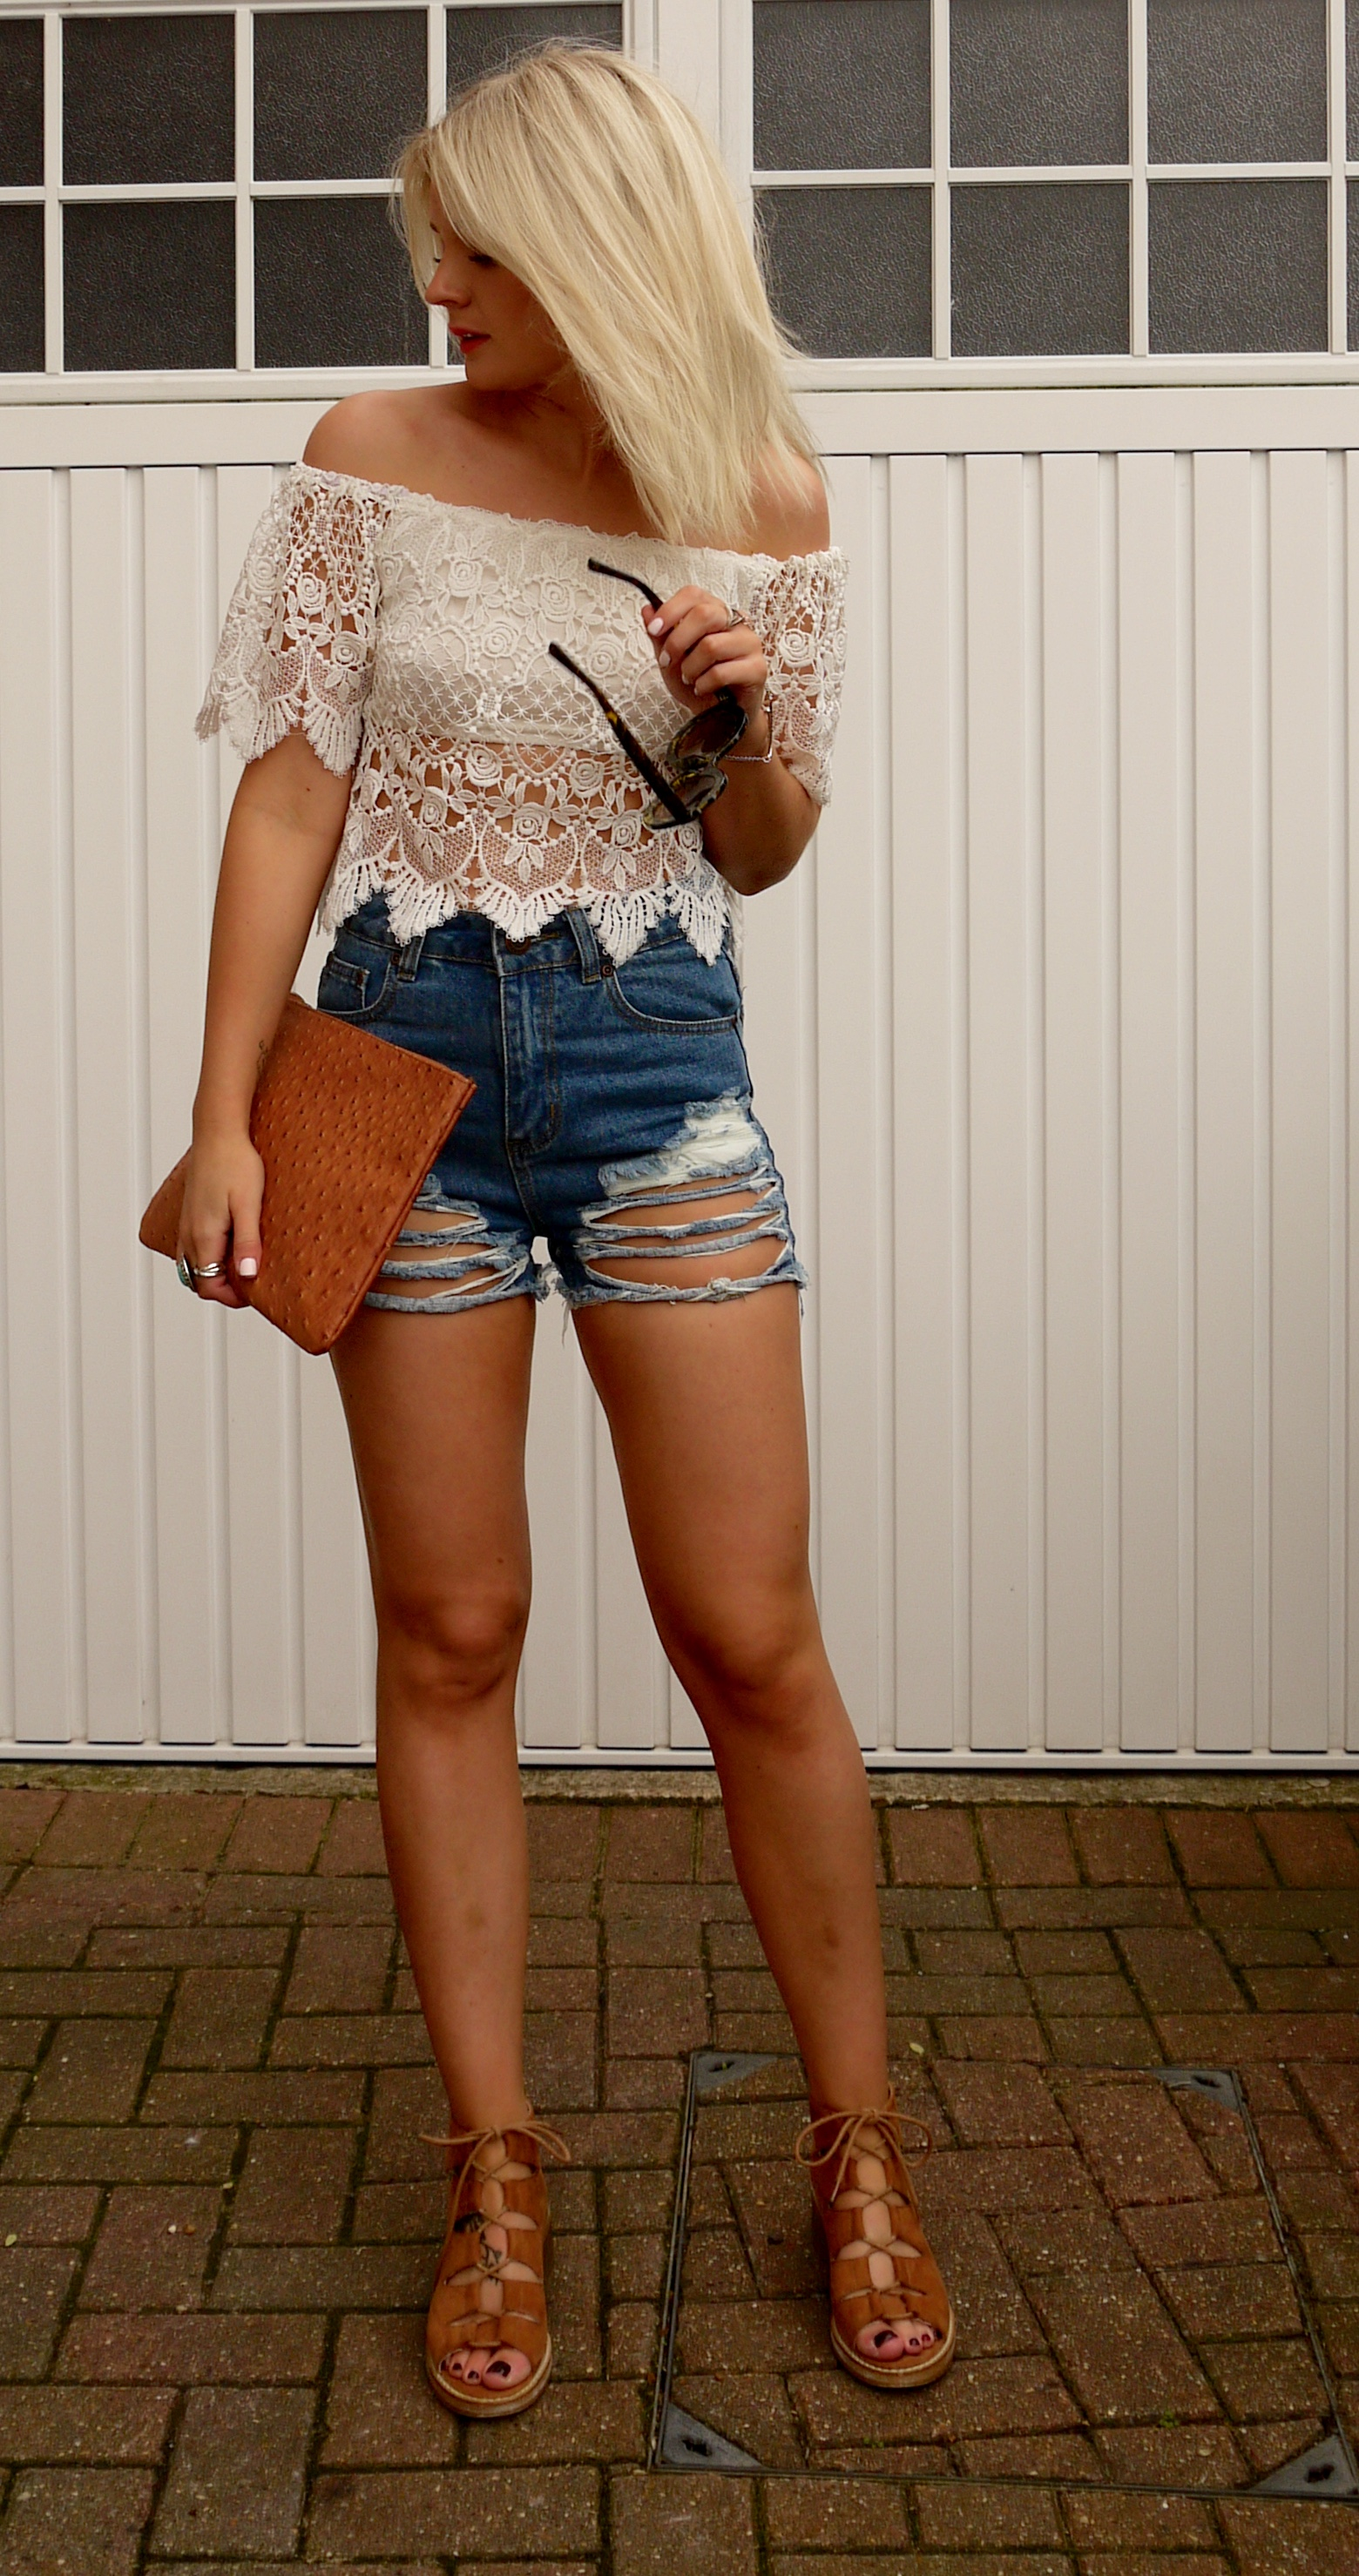 boohoo denin shorts, distressed shorts, crochet top, blonde hair, ash blonde hair, tan lace up sandals, round tortoise shell glasses, tan clutch bag, fashion blogger, laura byrnes , lauras little locket,